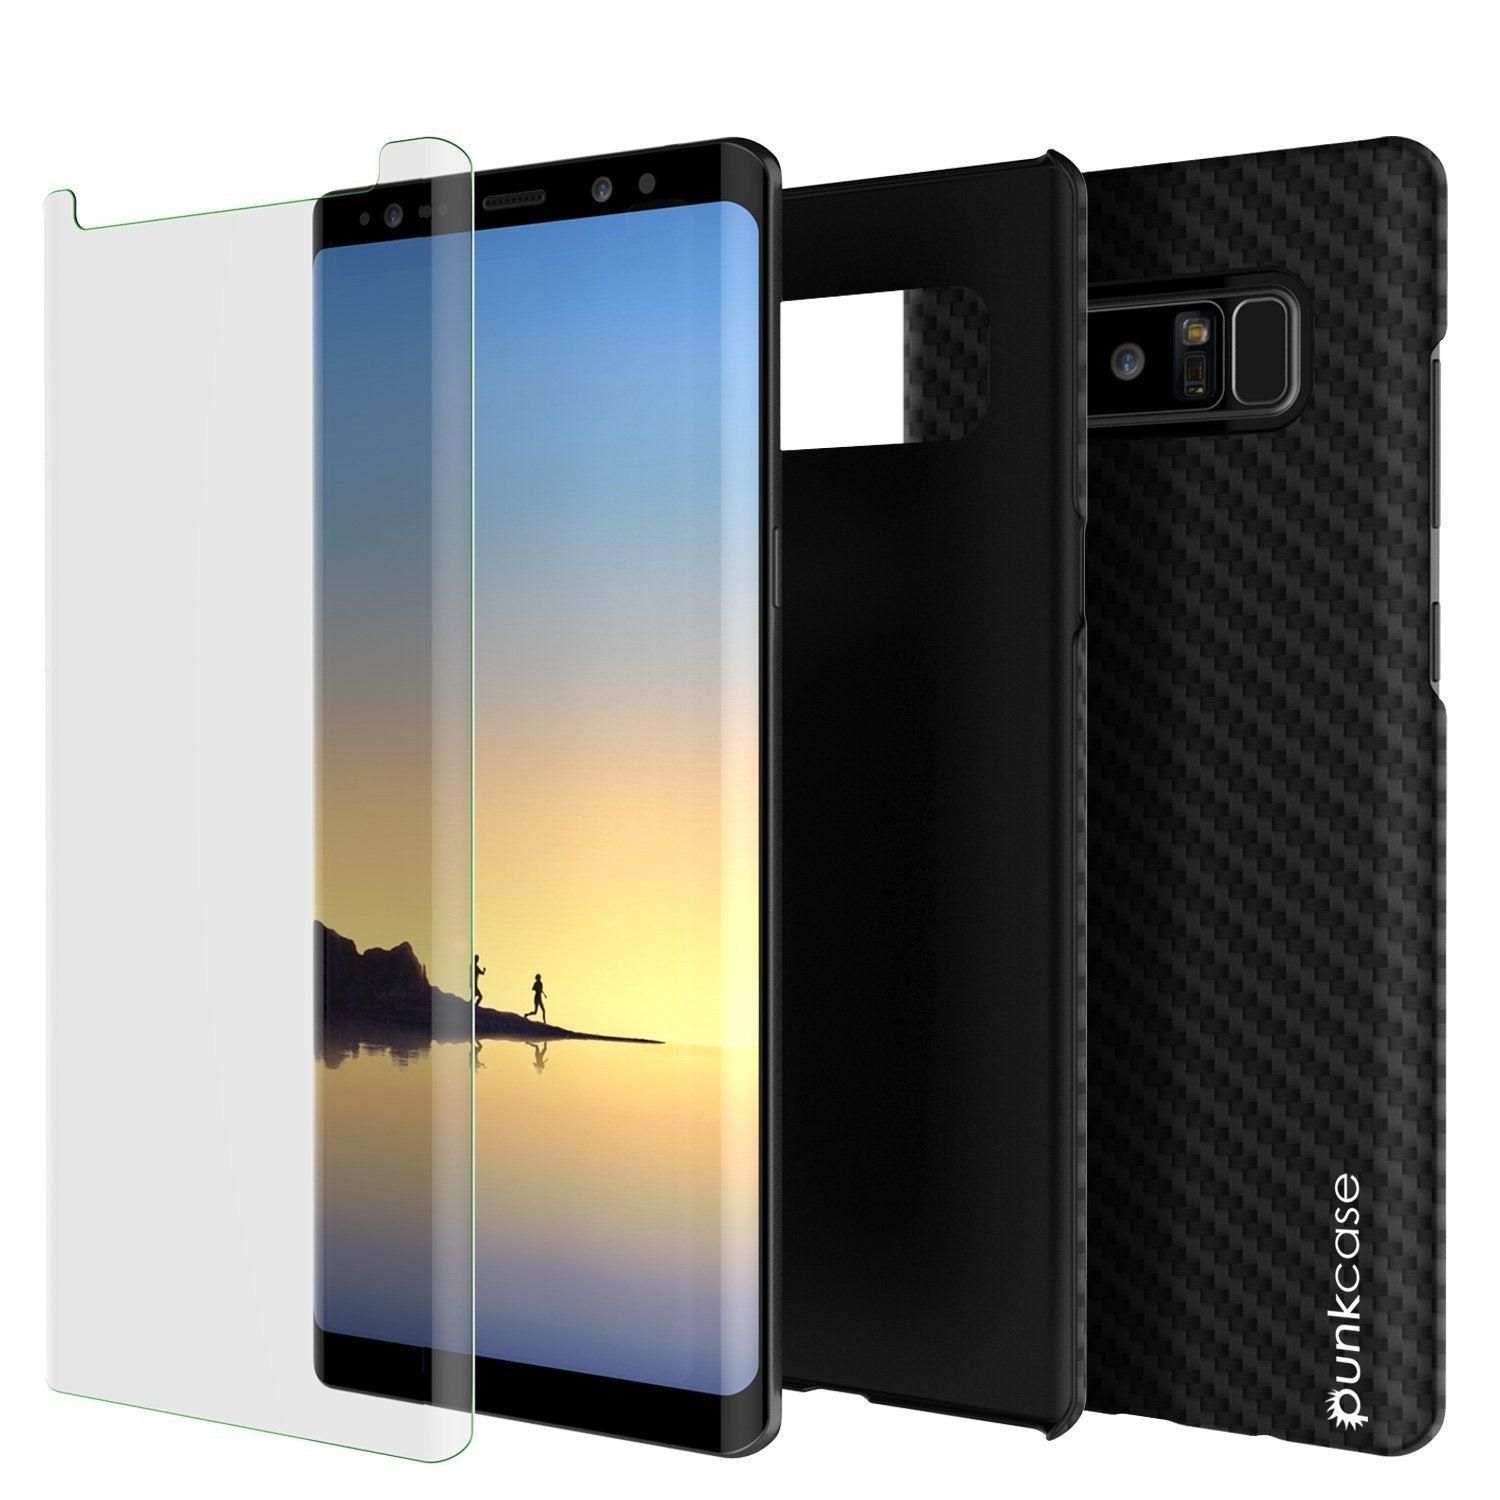 Galaxy Note 8 PunkCase, CarbonShield & Ultra Thin Layer [jet black]